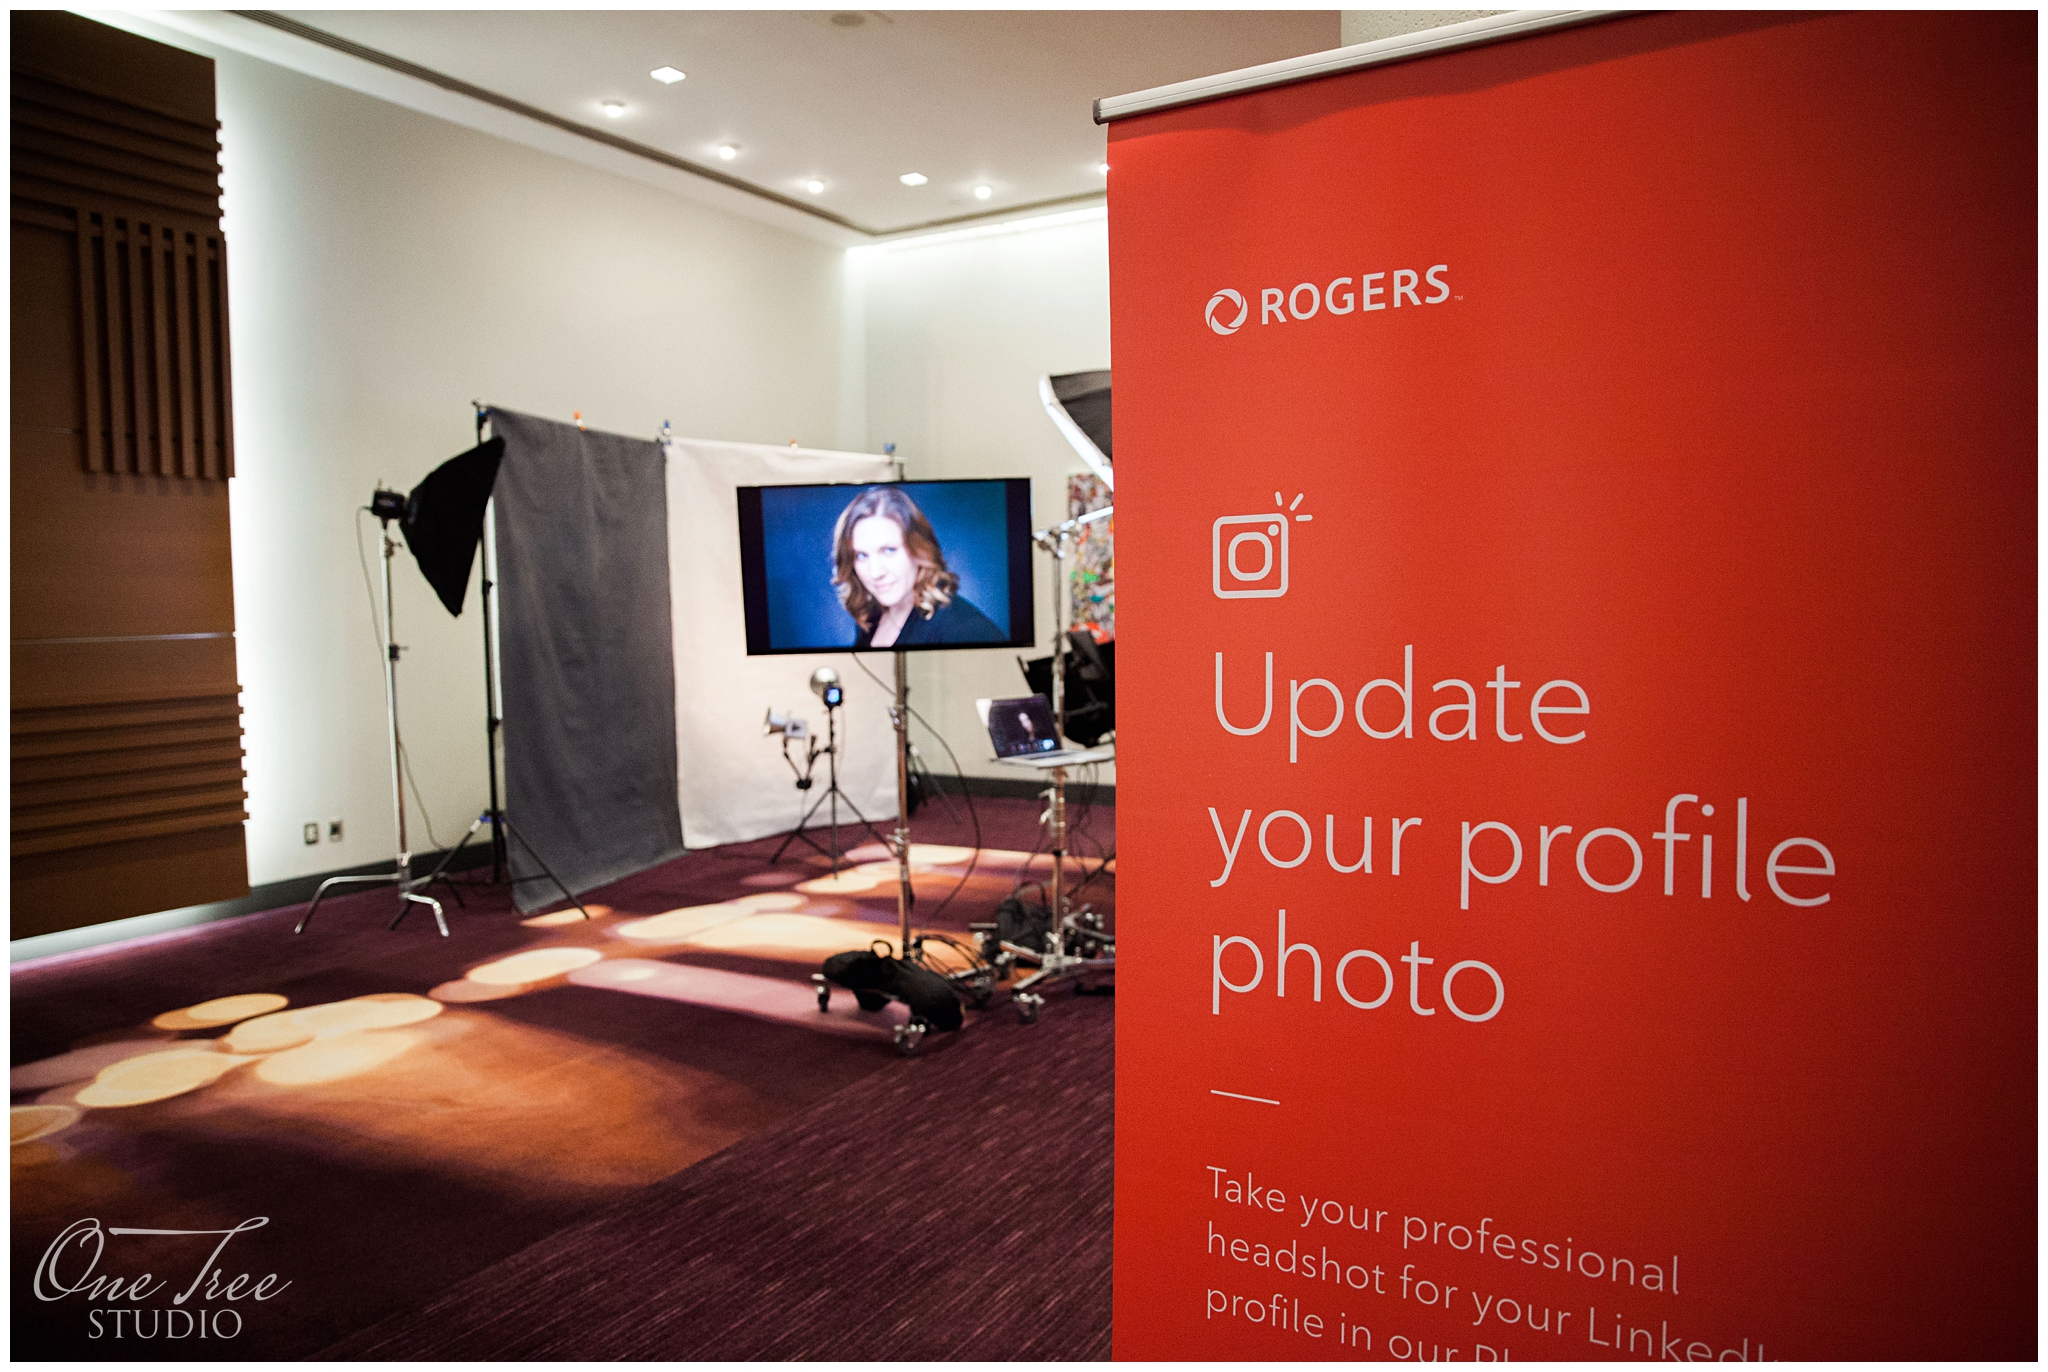 Luxury Photo Booths | Brand Activations | Marketing | One Tree Studio Booth | Toronto and Niagara Region